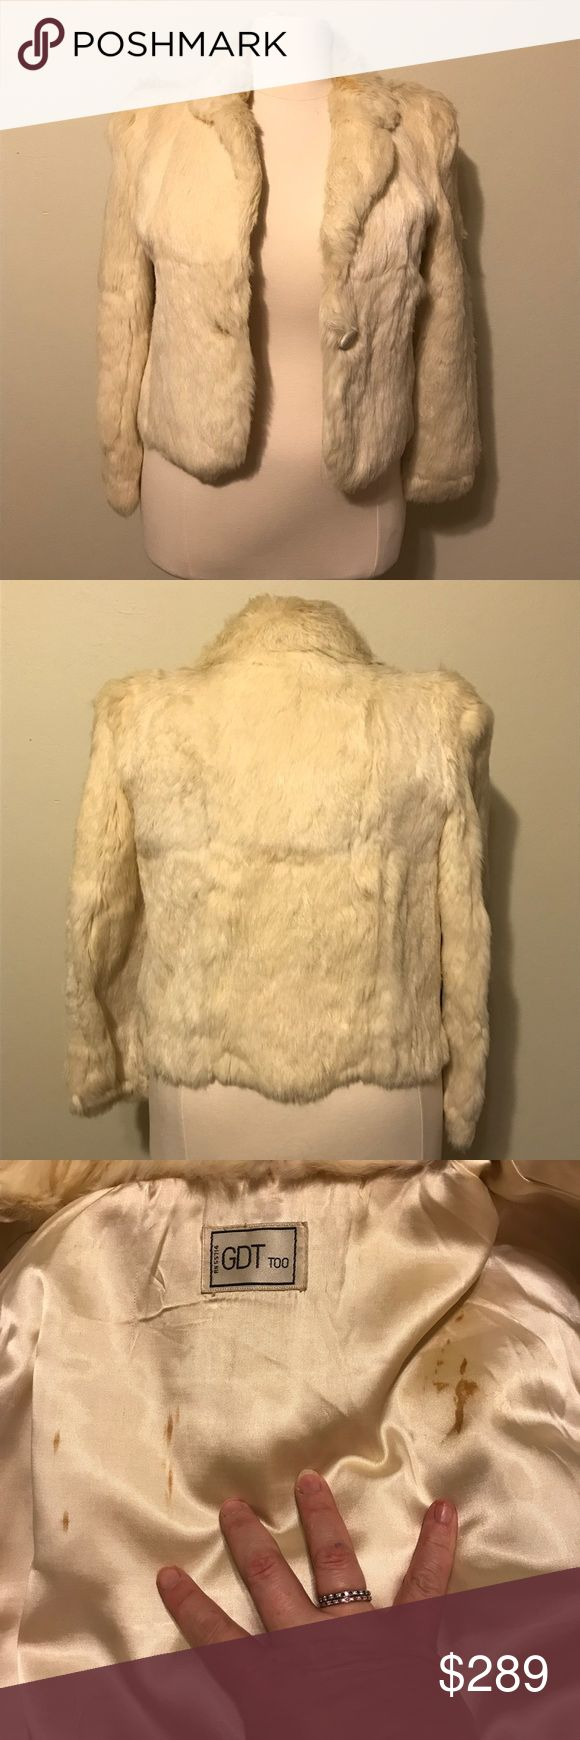 "❣️ cream colored vintage rabbit fur size large This vintage coat is in great condition. It's a size large cream rabbit fur coat with an acetate lining. The lining does have some discoloration due to age (pic 3 & 4) but there are no snags or holes. The front closes with a white single button. Approximate measurements are bust 40"", waist 39"", bottom hem 42"", total length 21.5"", sleeve 23.5""mane bicep 10"". DO NOT BUNDLE. GDT Too Jackets & Coats"